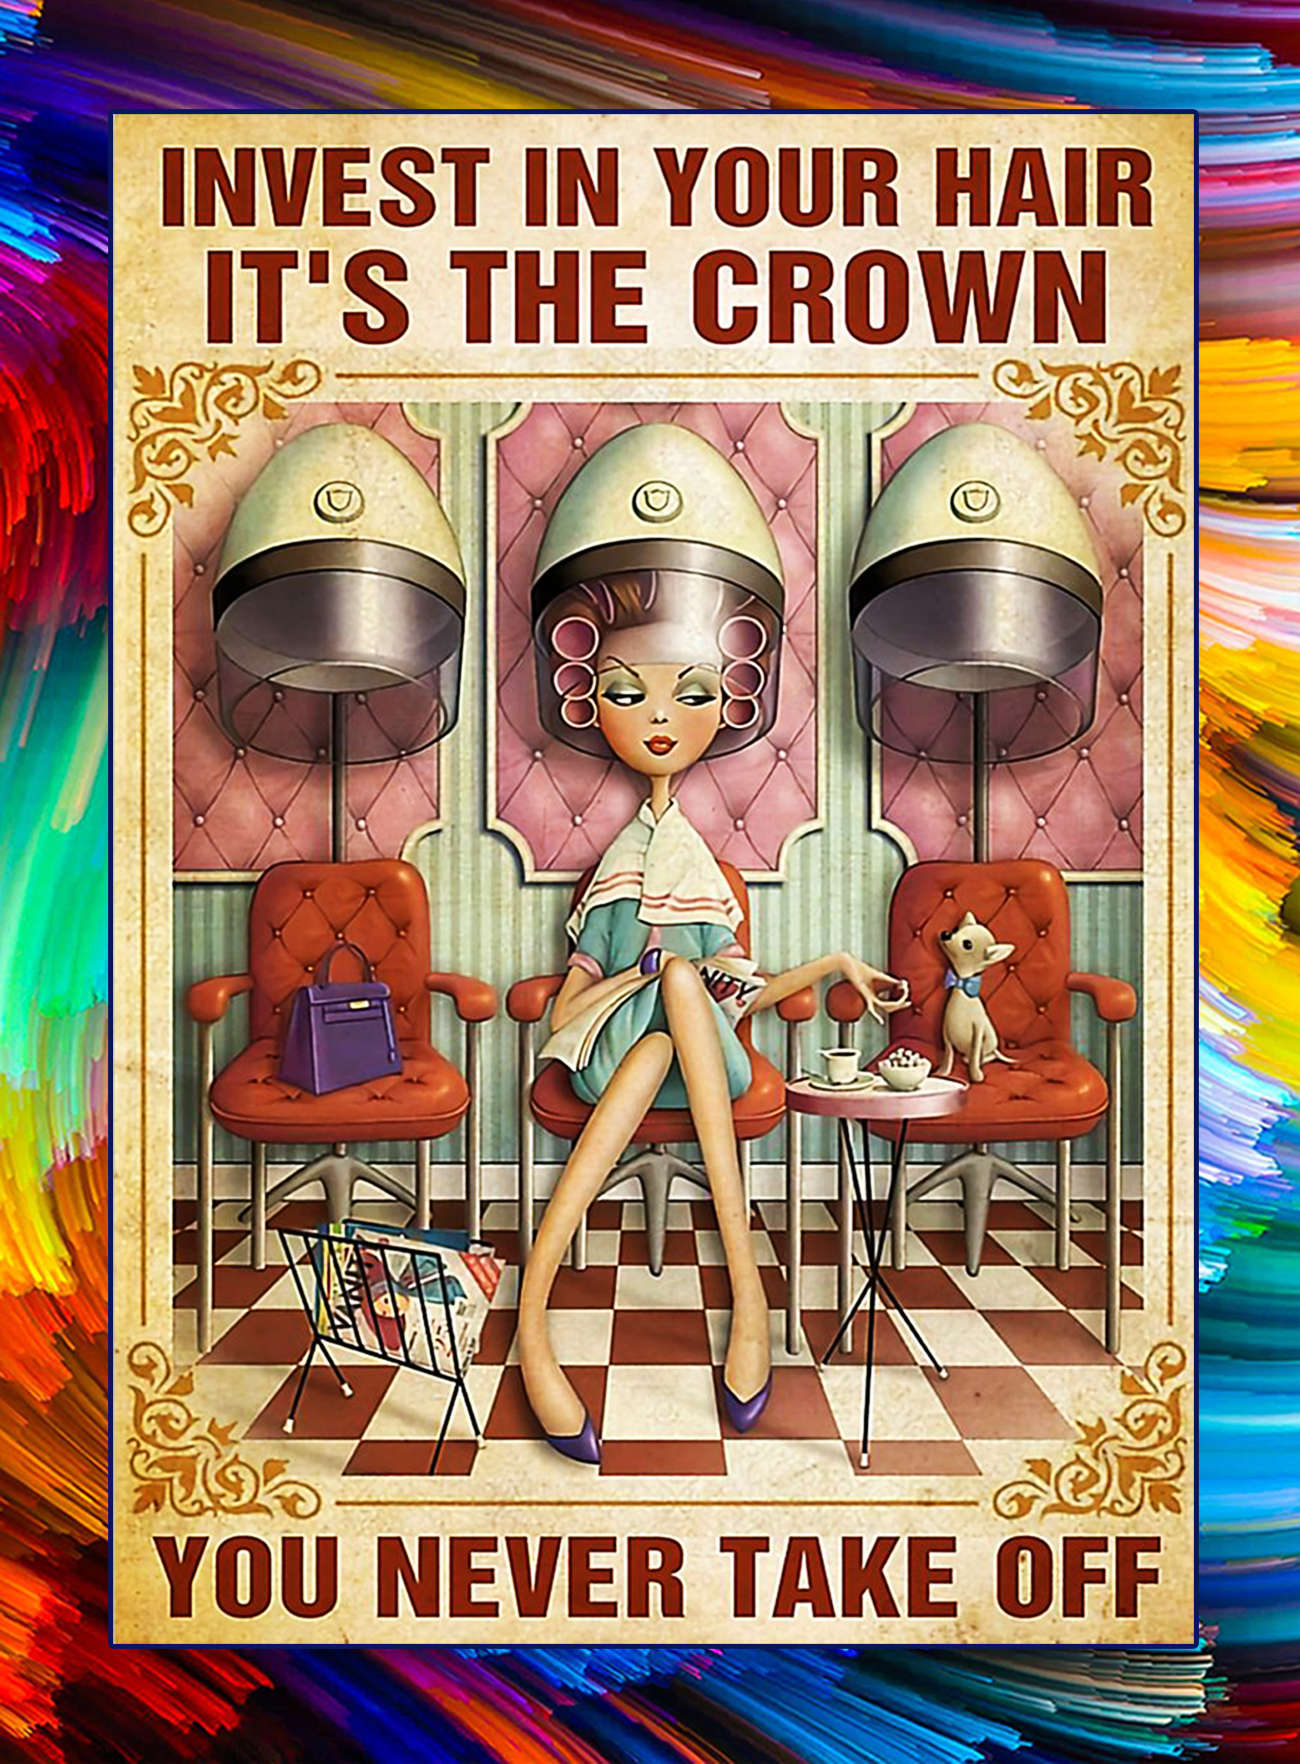 Hairdresser Invest in your hair it's the crown you never take off poster - A1